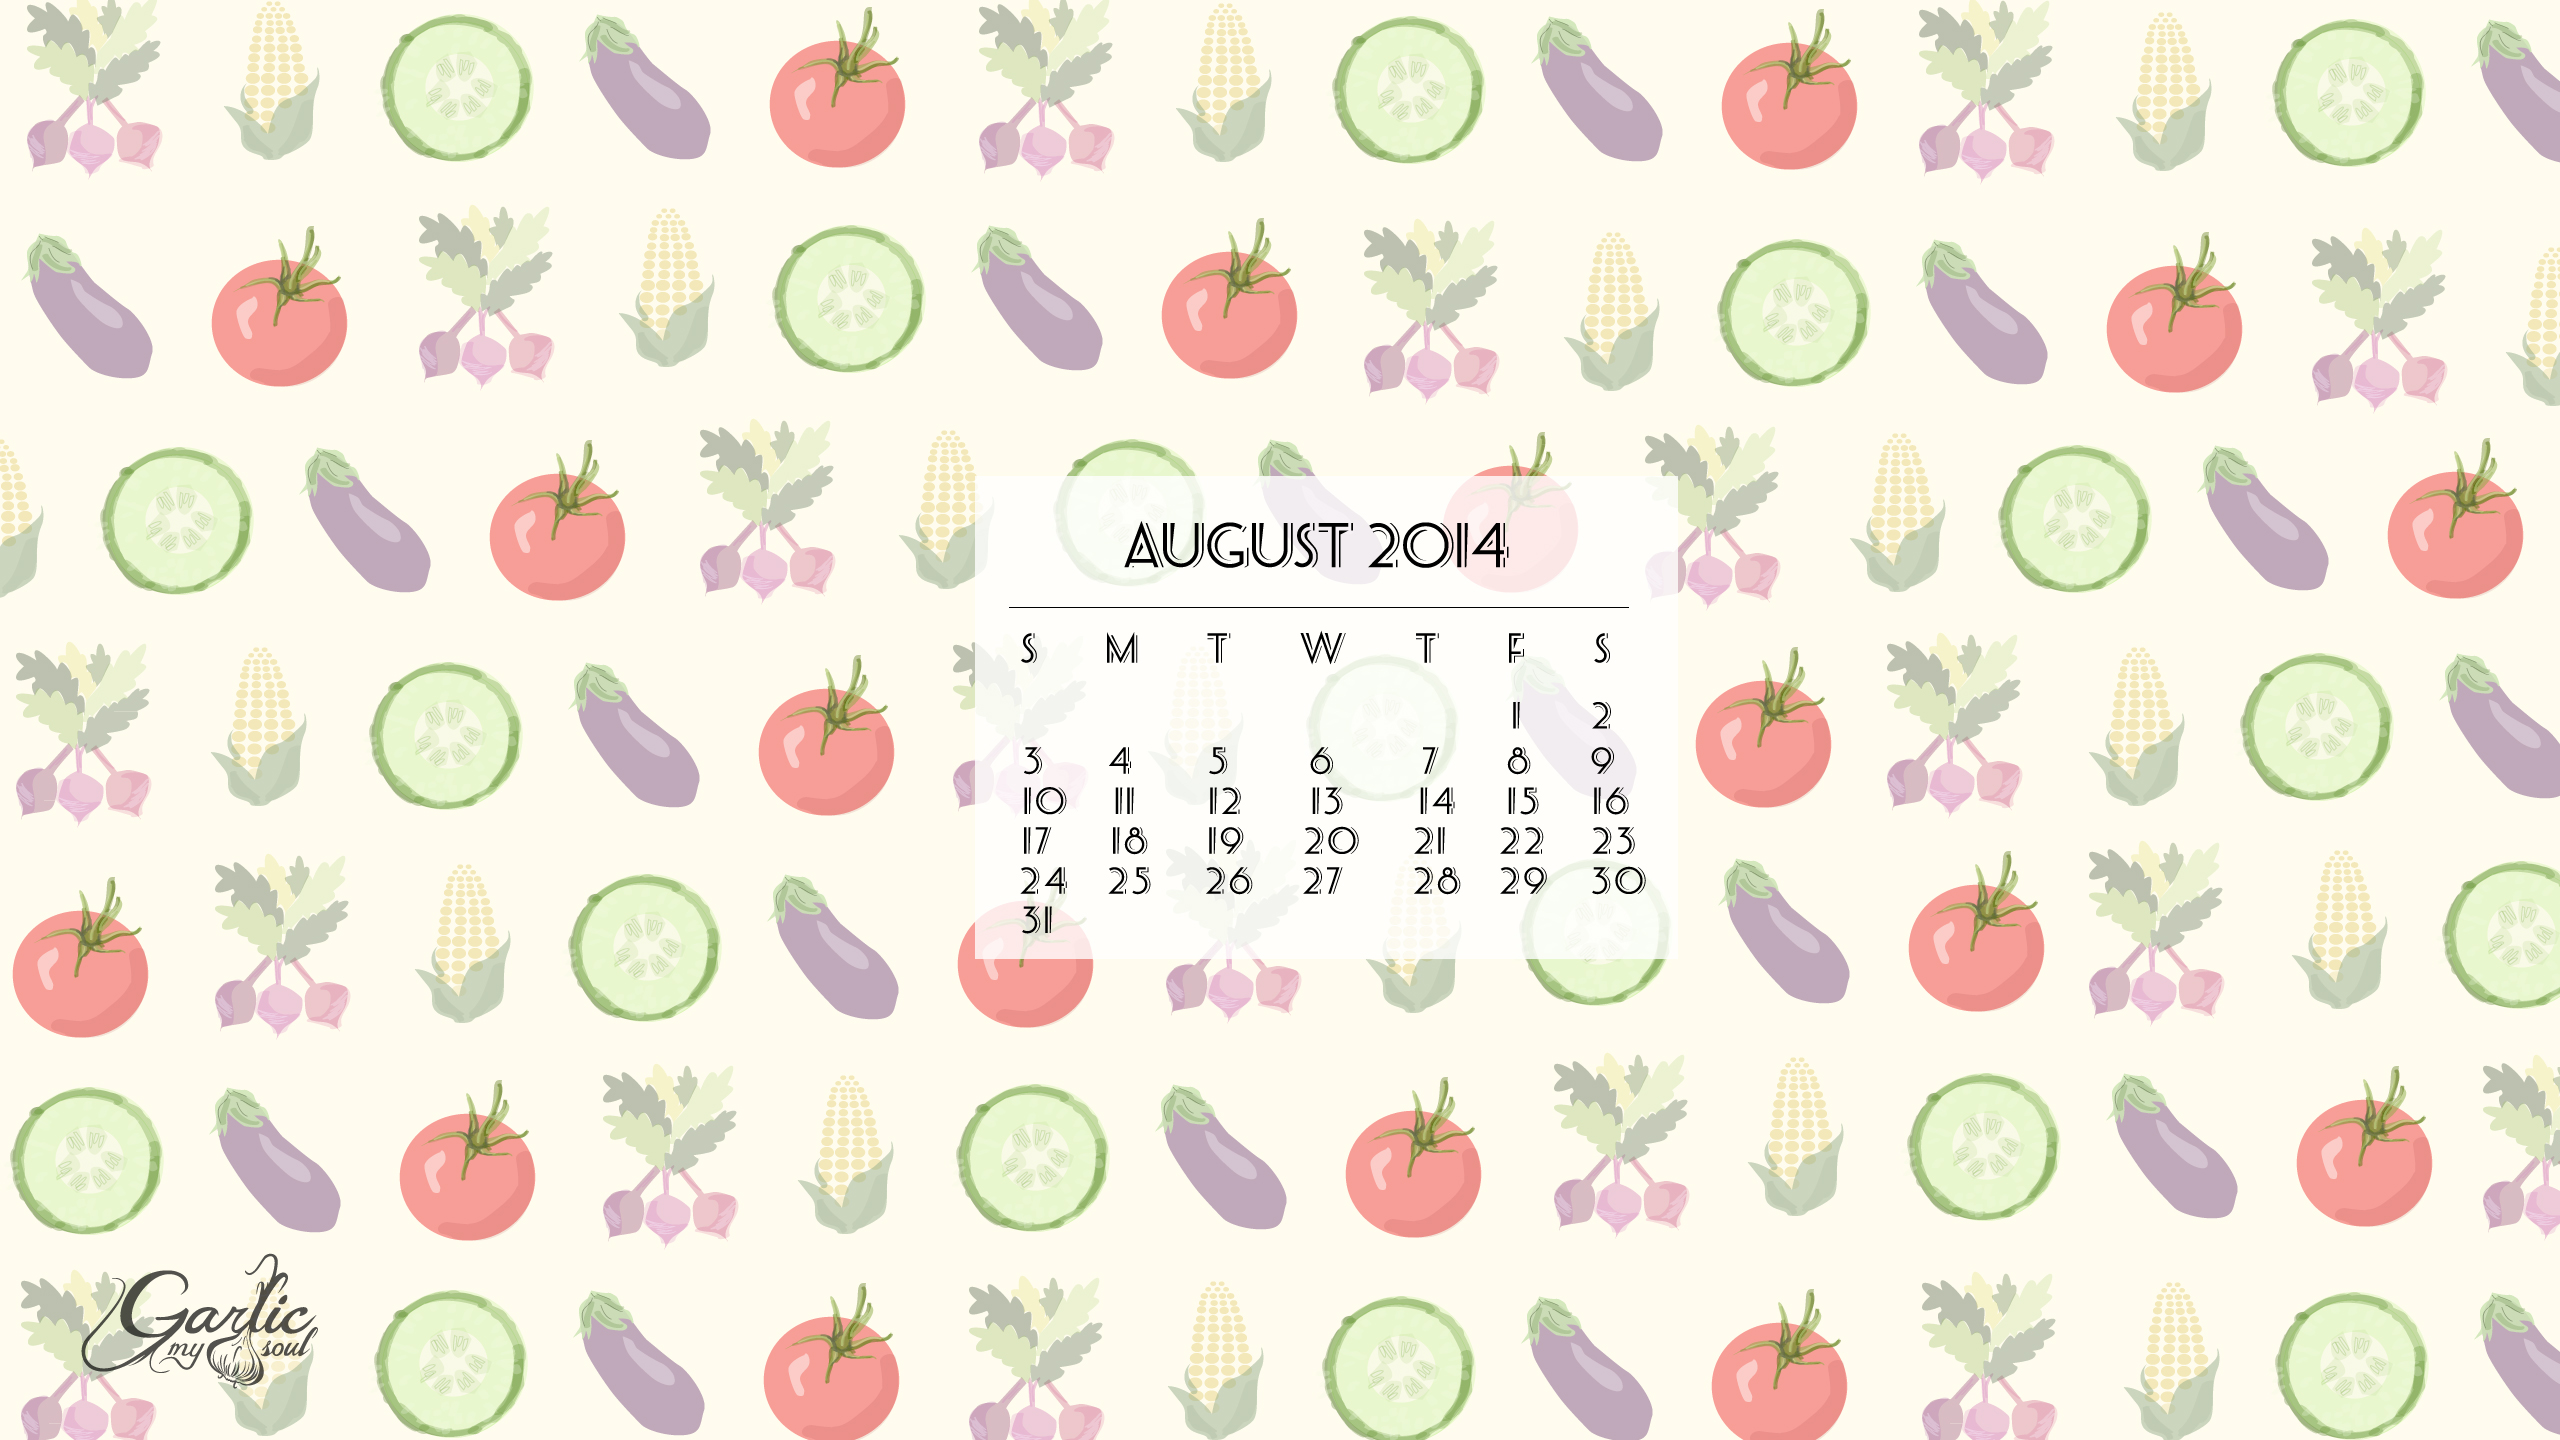 August Desktop Calendar | Garlic, My Soul